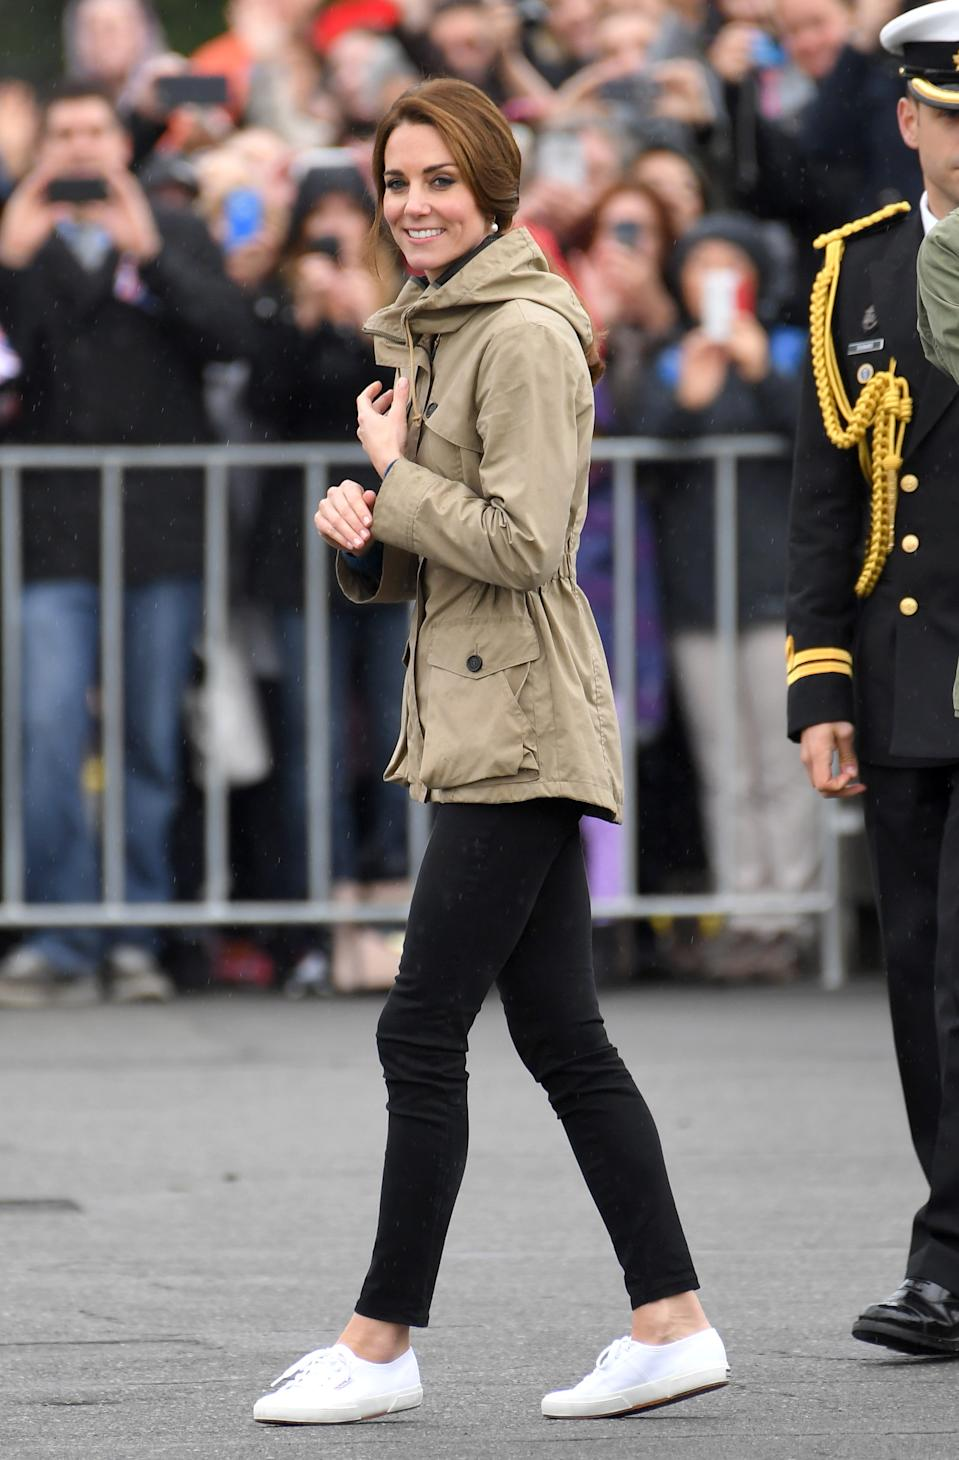 The Duchess of Cambridge has been wearing these shoes for years.